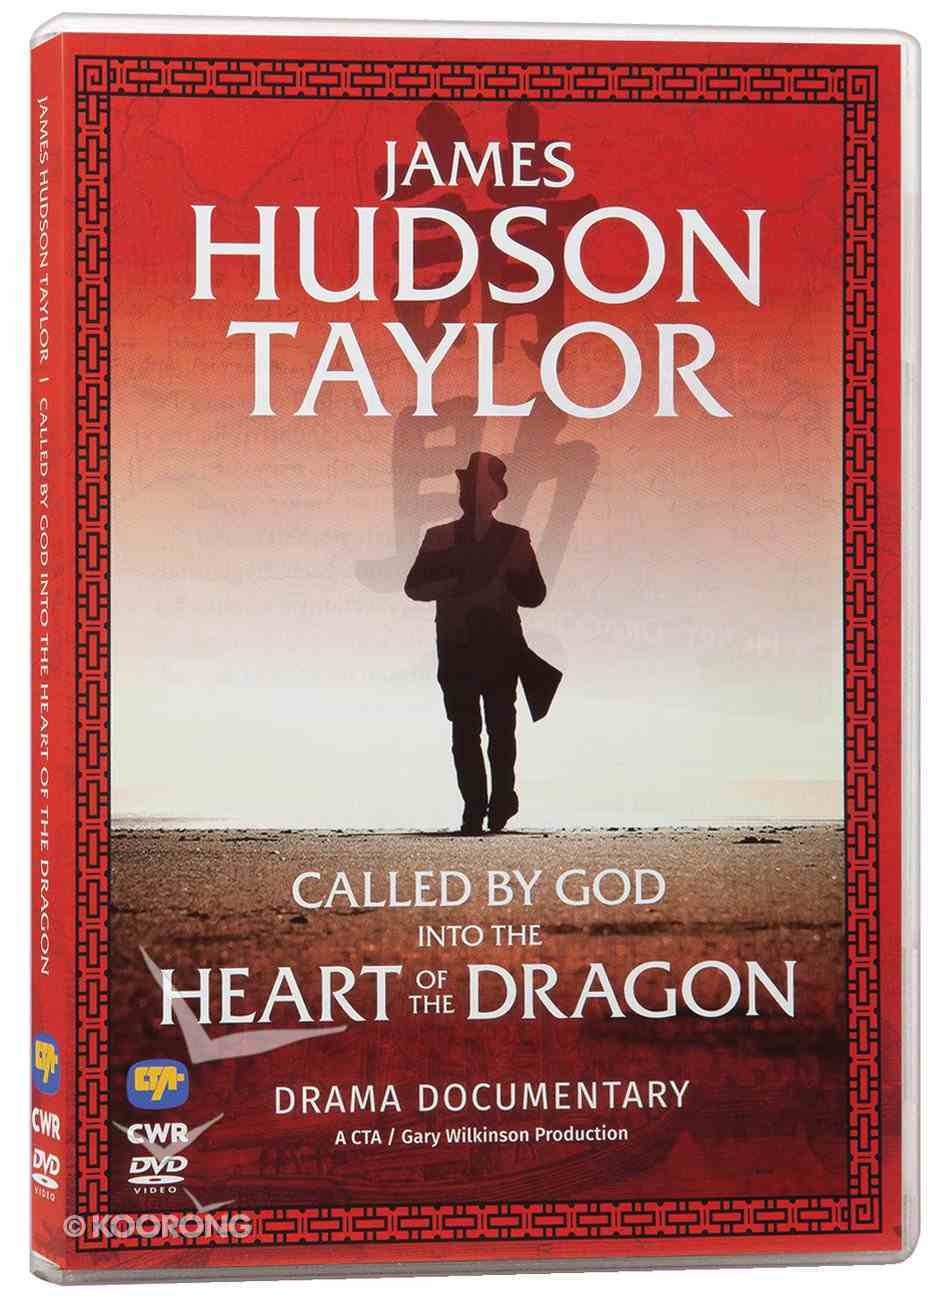 James Hudson Taylor: Called By God Into the Heart of the Dragon DVD